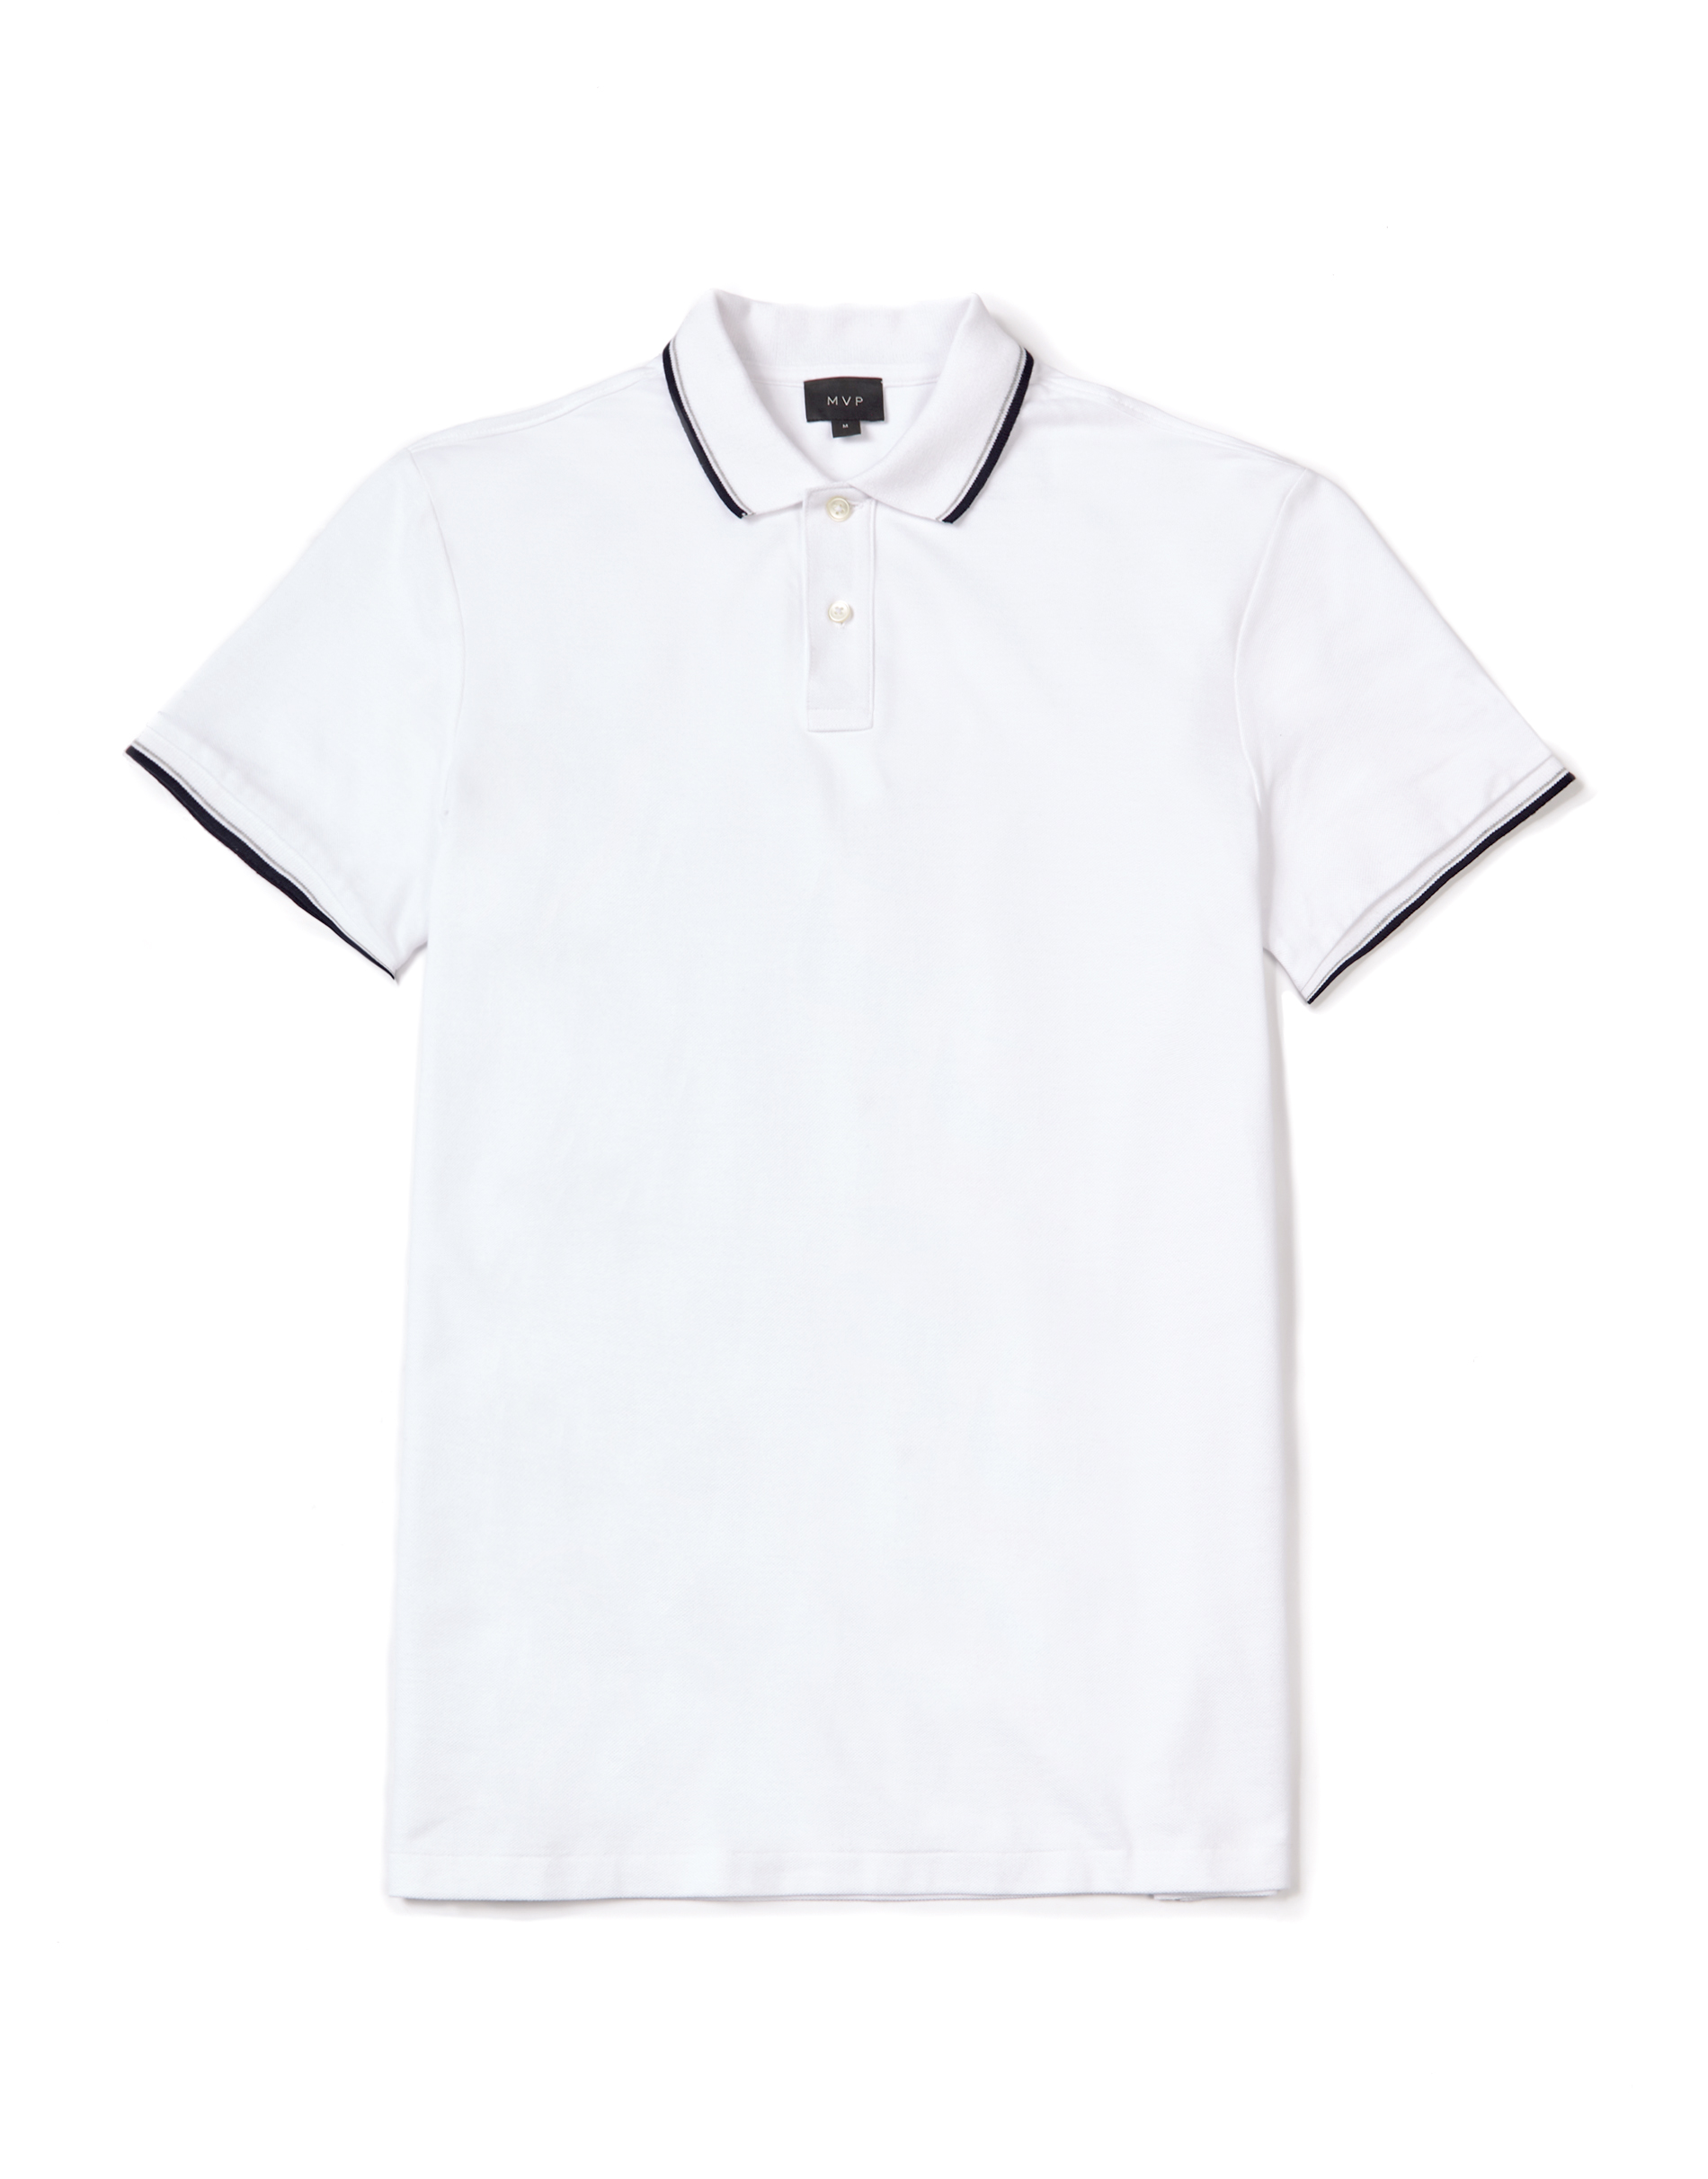 MVP WHITE Wilkes Regular Fit Polo with Contrast Tipping